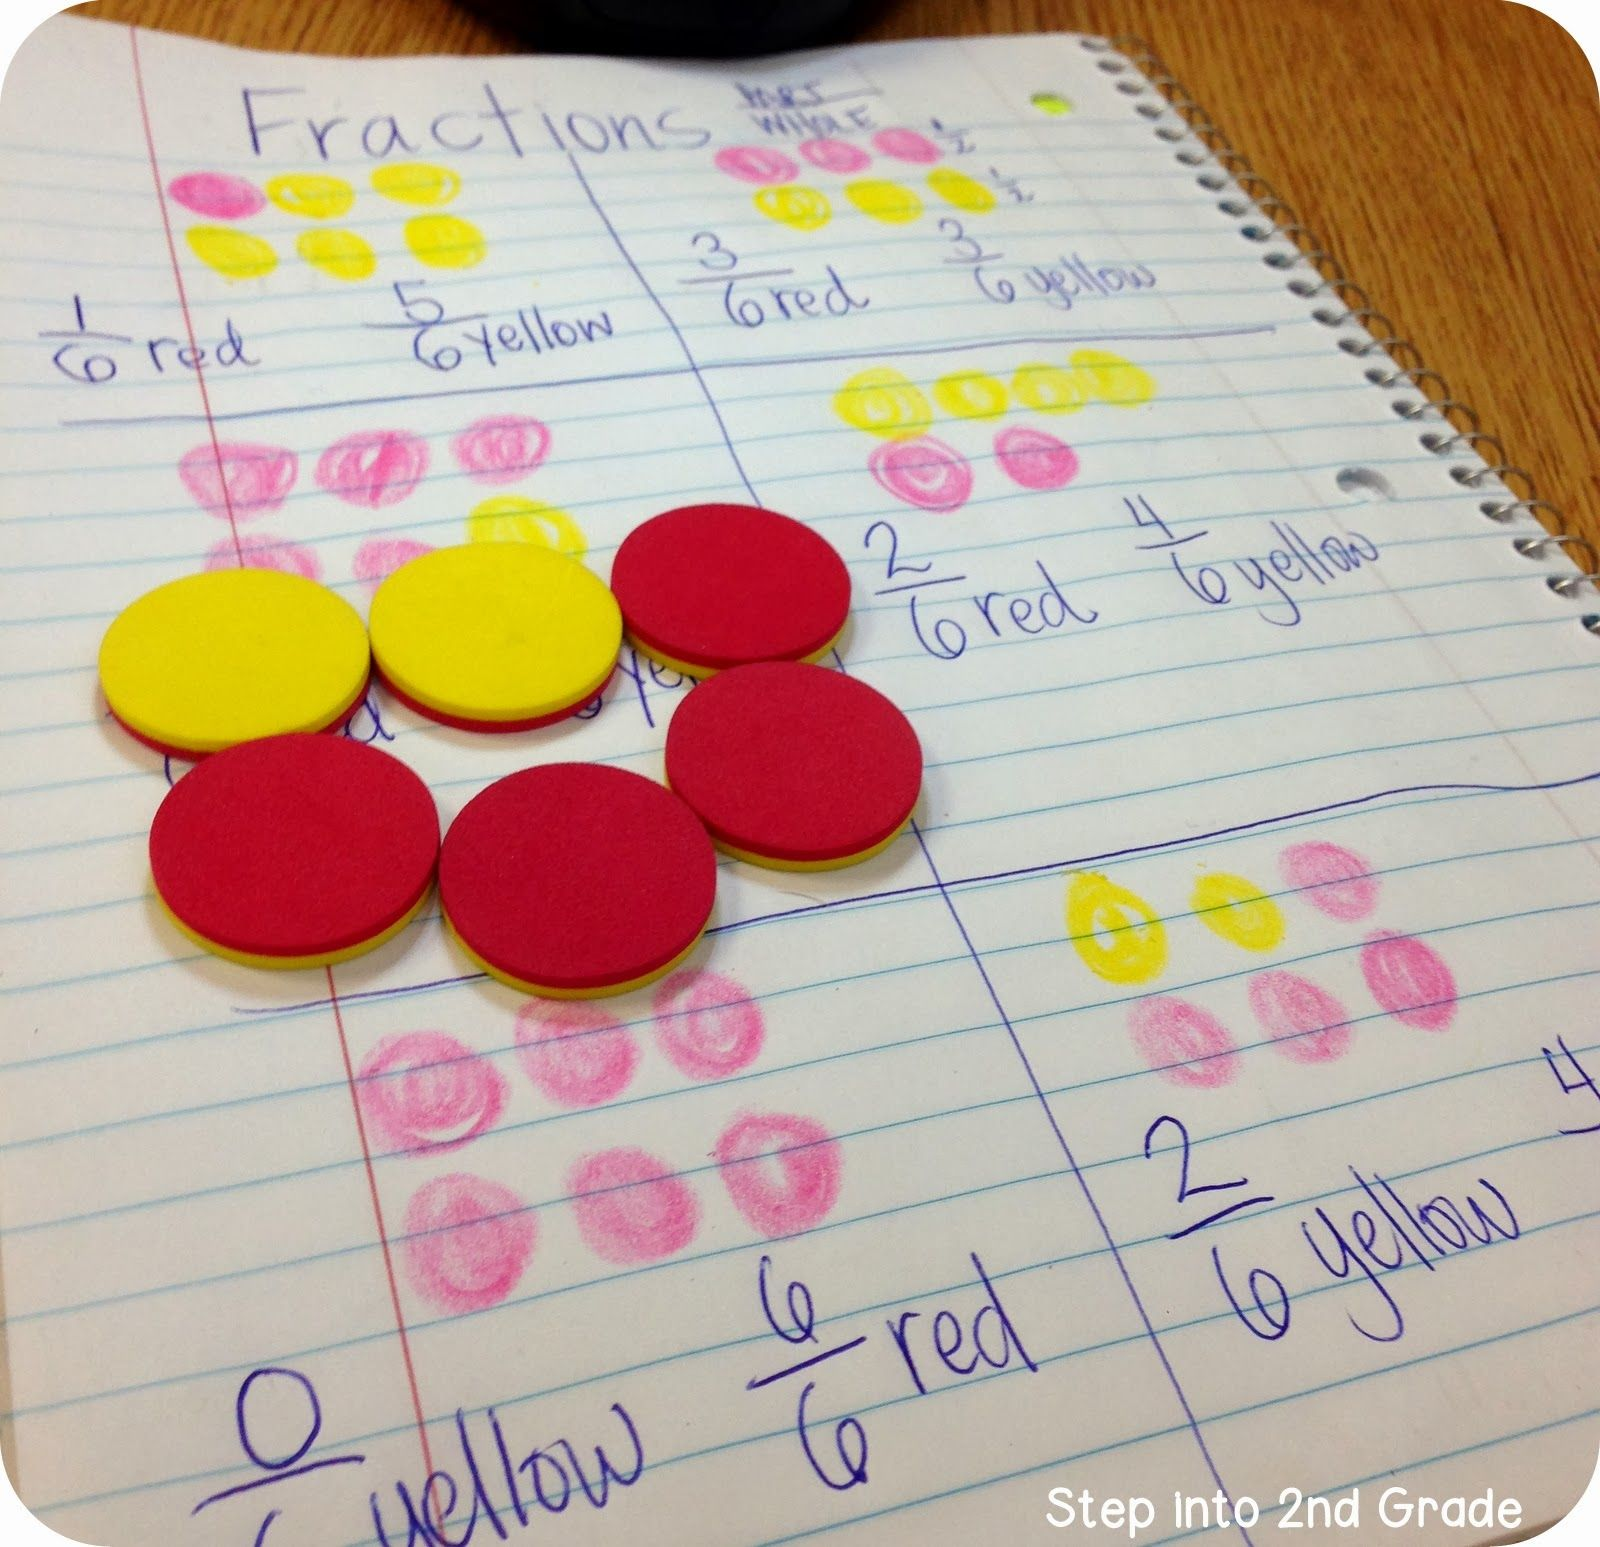 Introducing Fractions With Counters